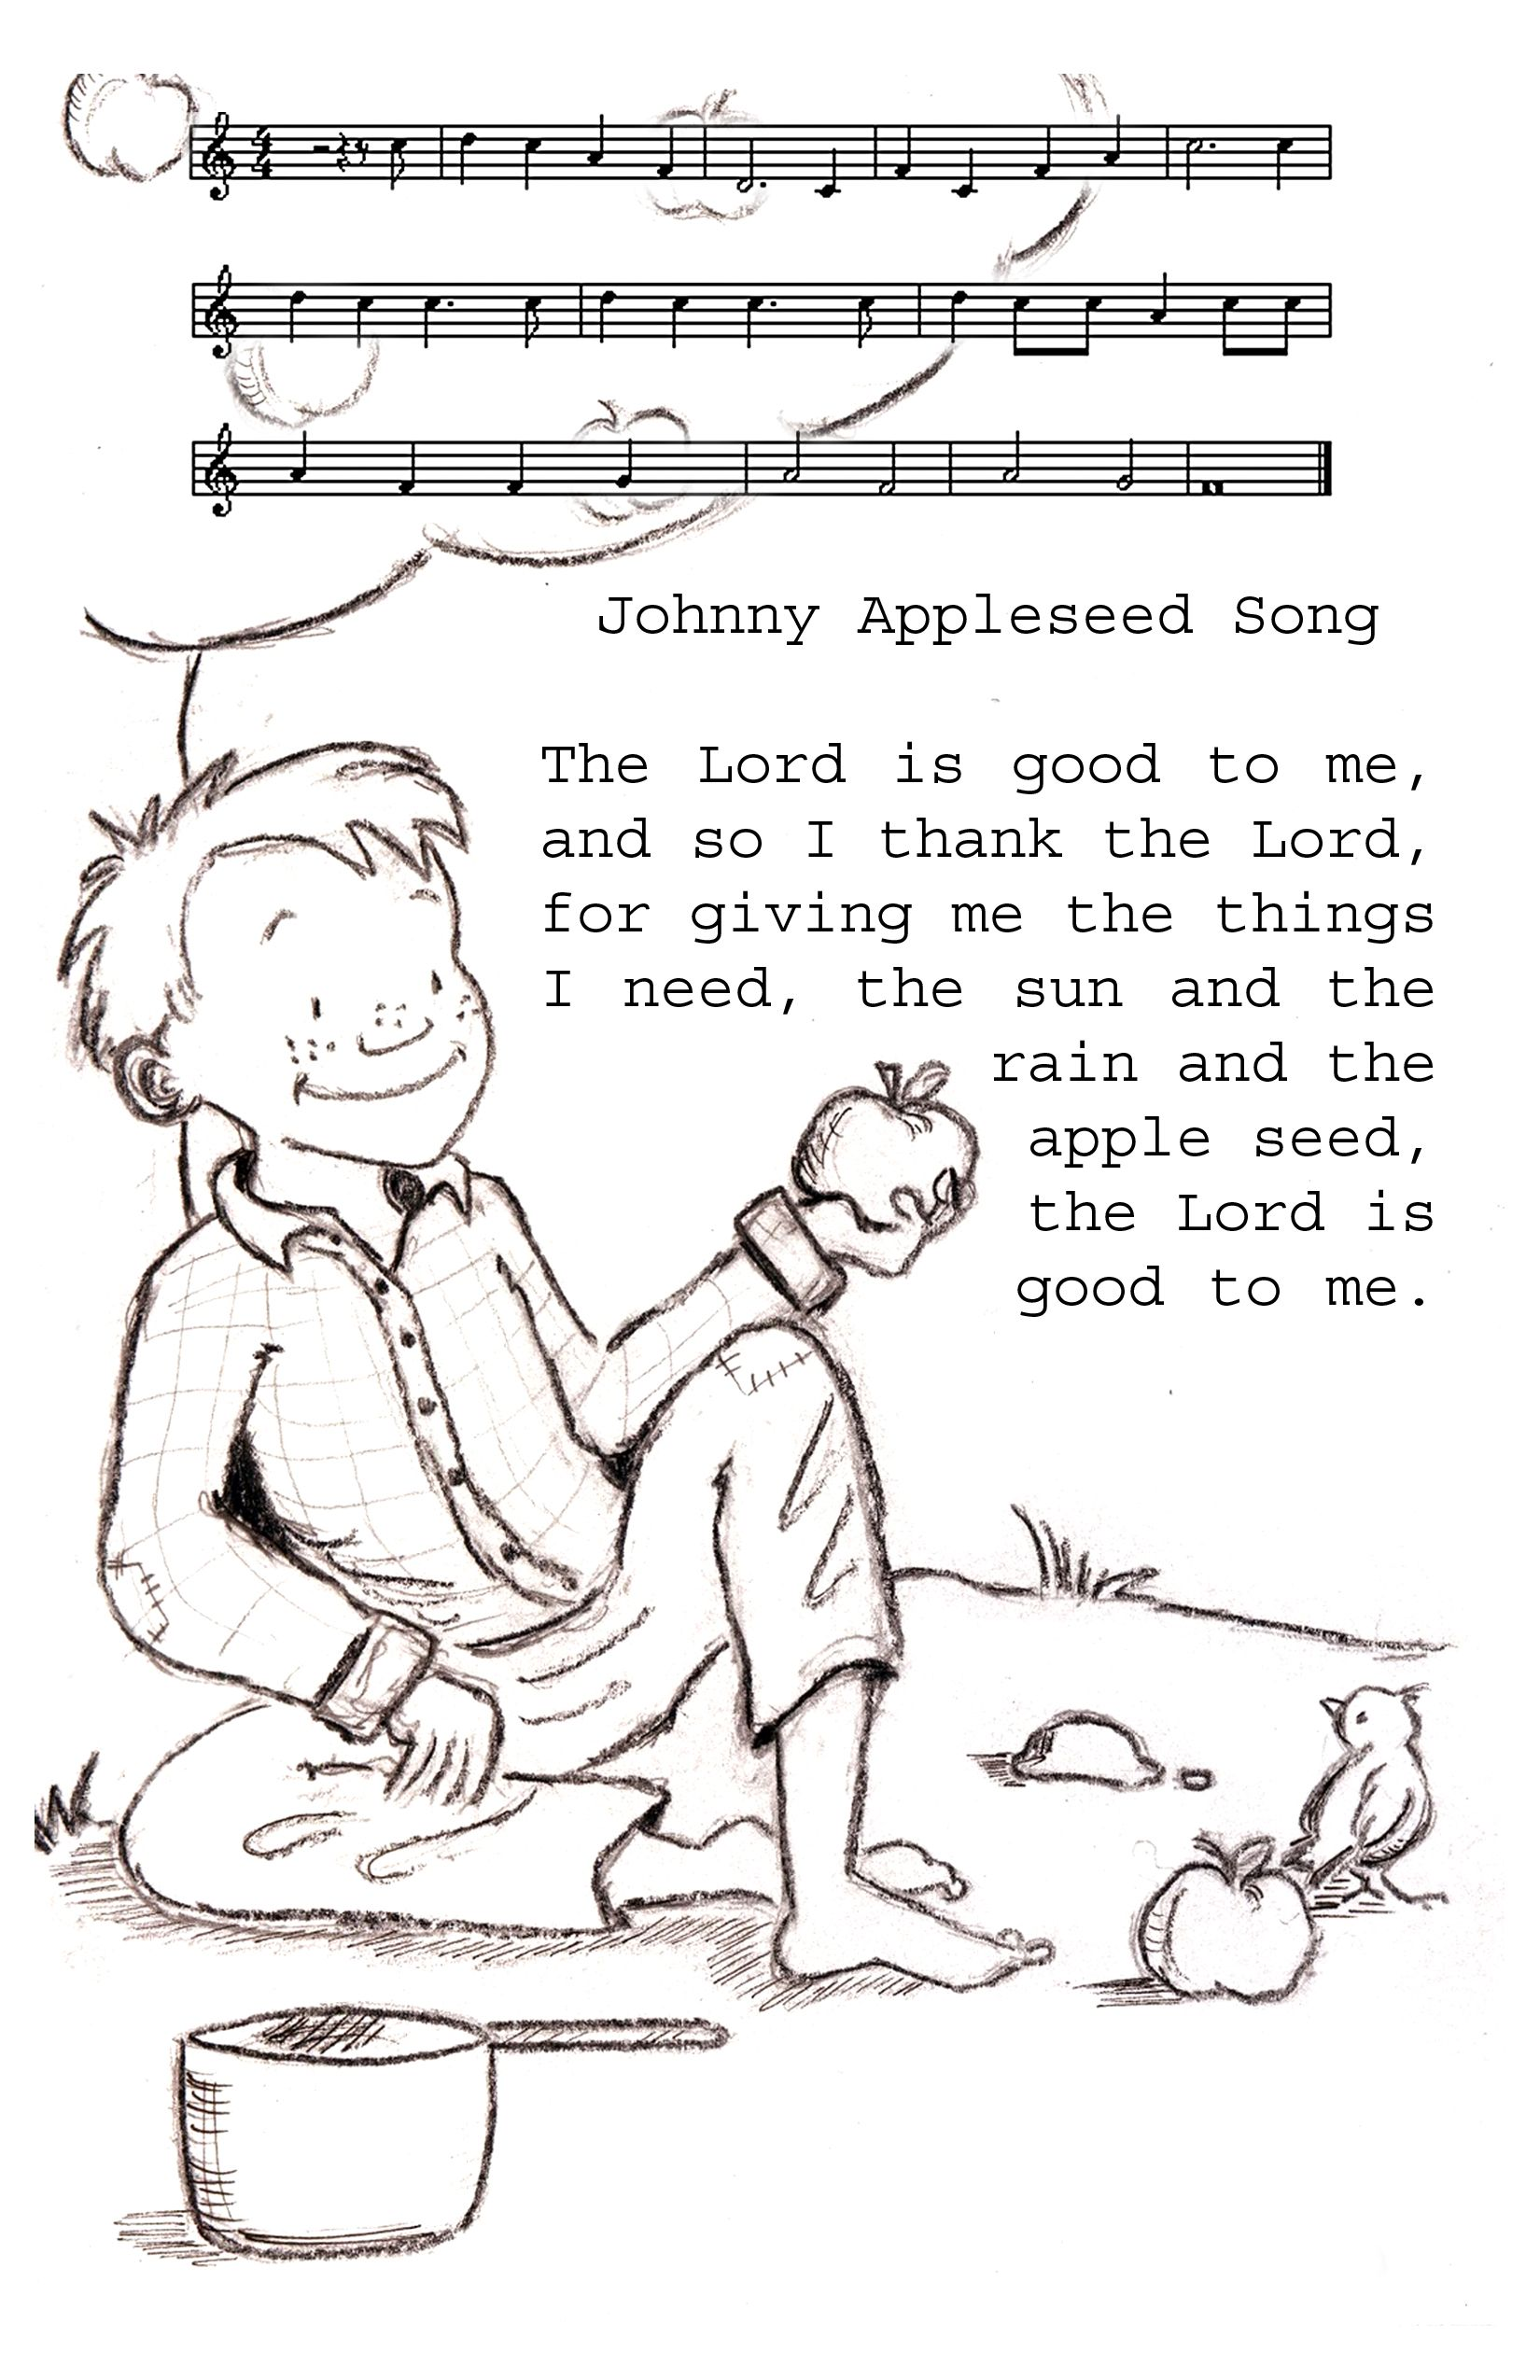 Johnny Appleseed Song Use This With The Kids For A Cute Mealtime Blessing Johnny Appleseed Song Prayers For Children Johnny Appleseed